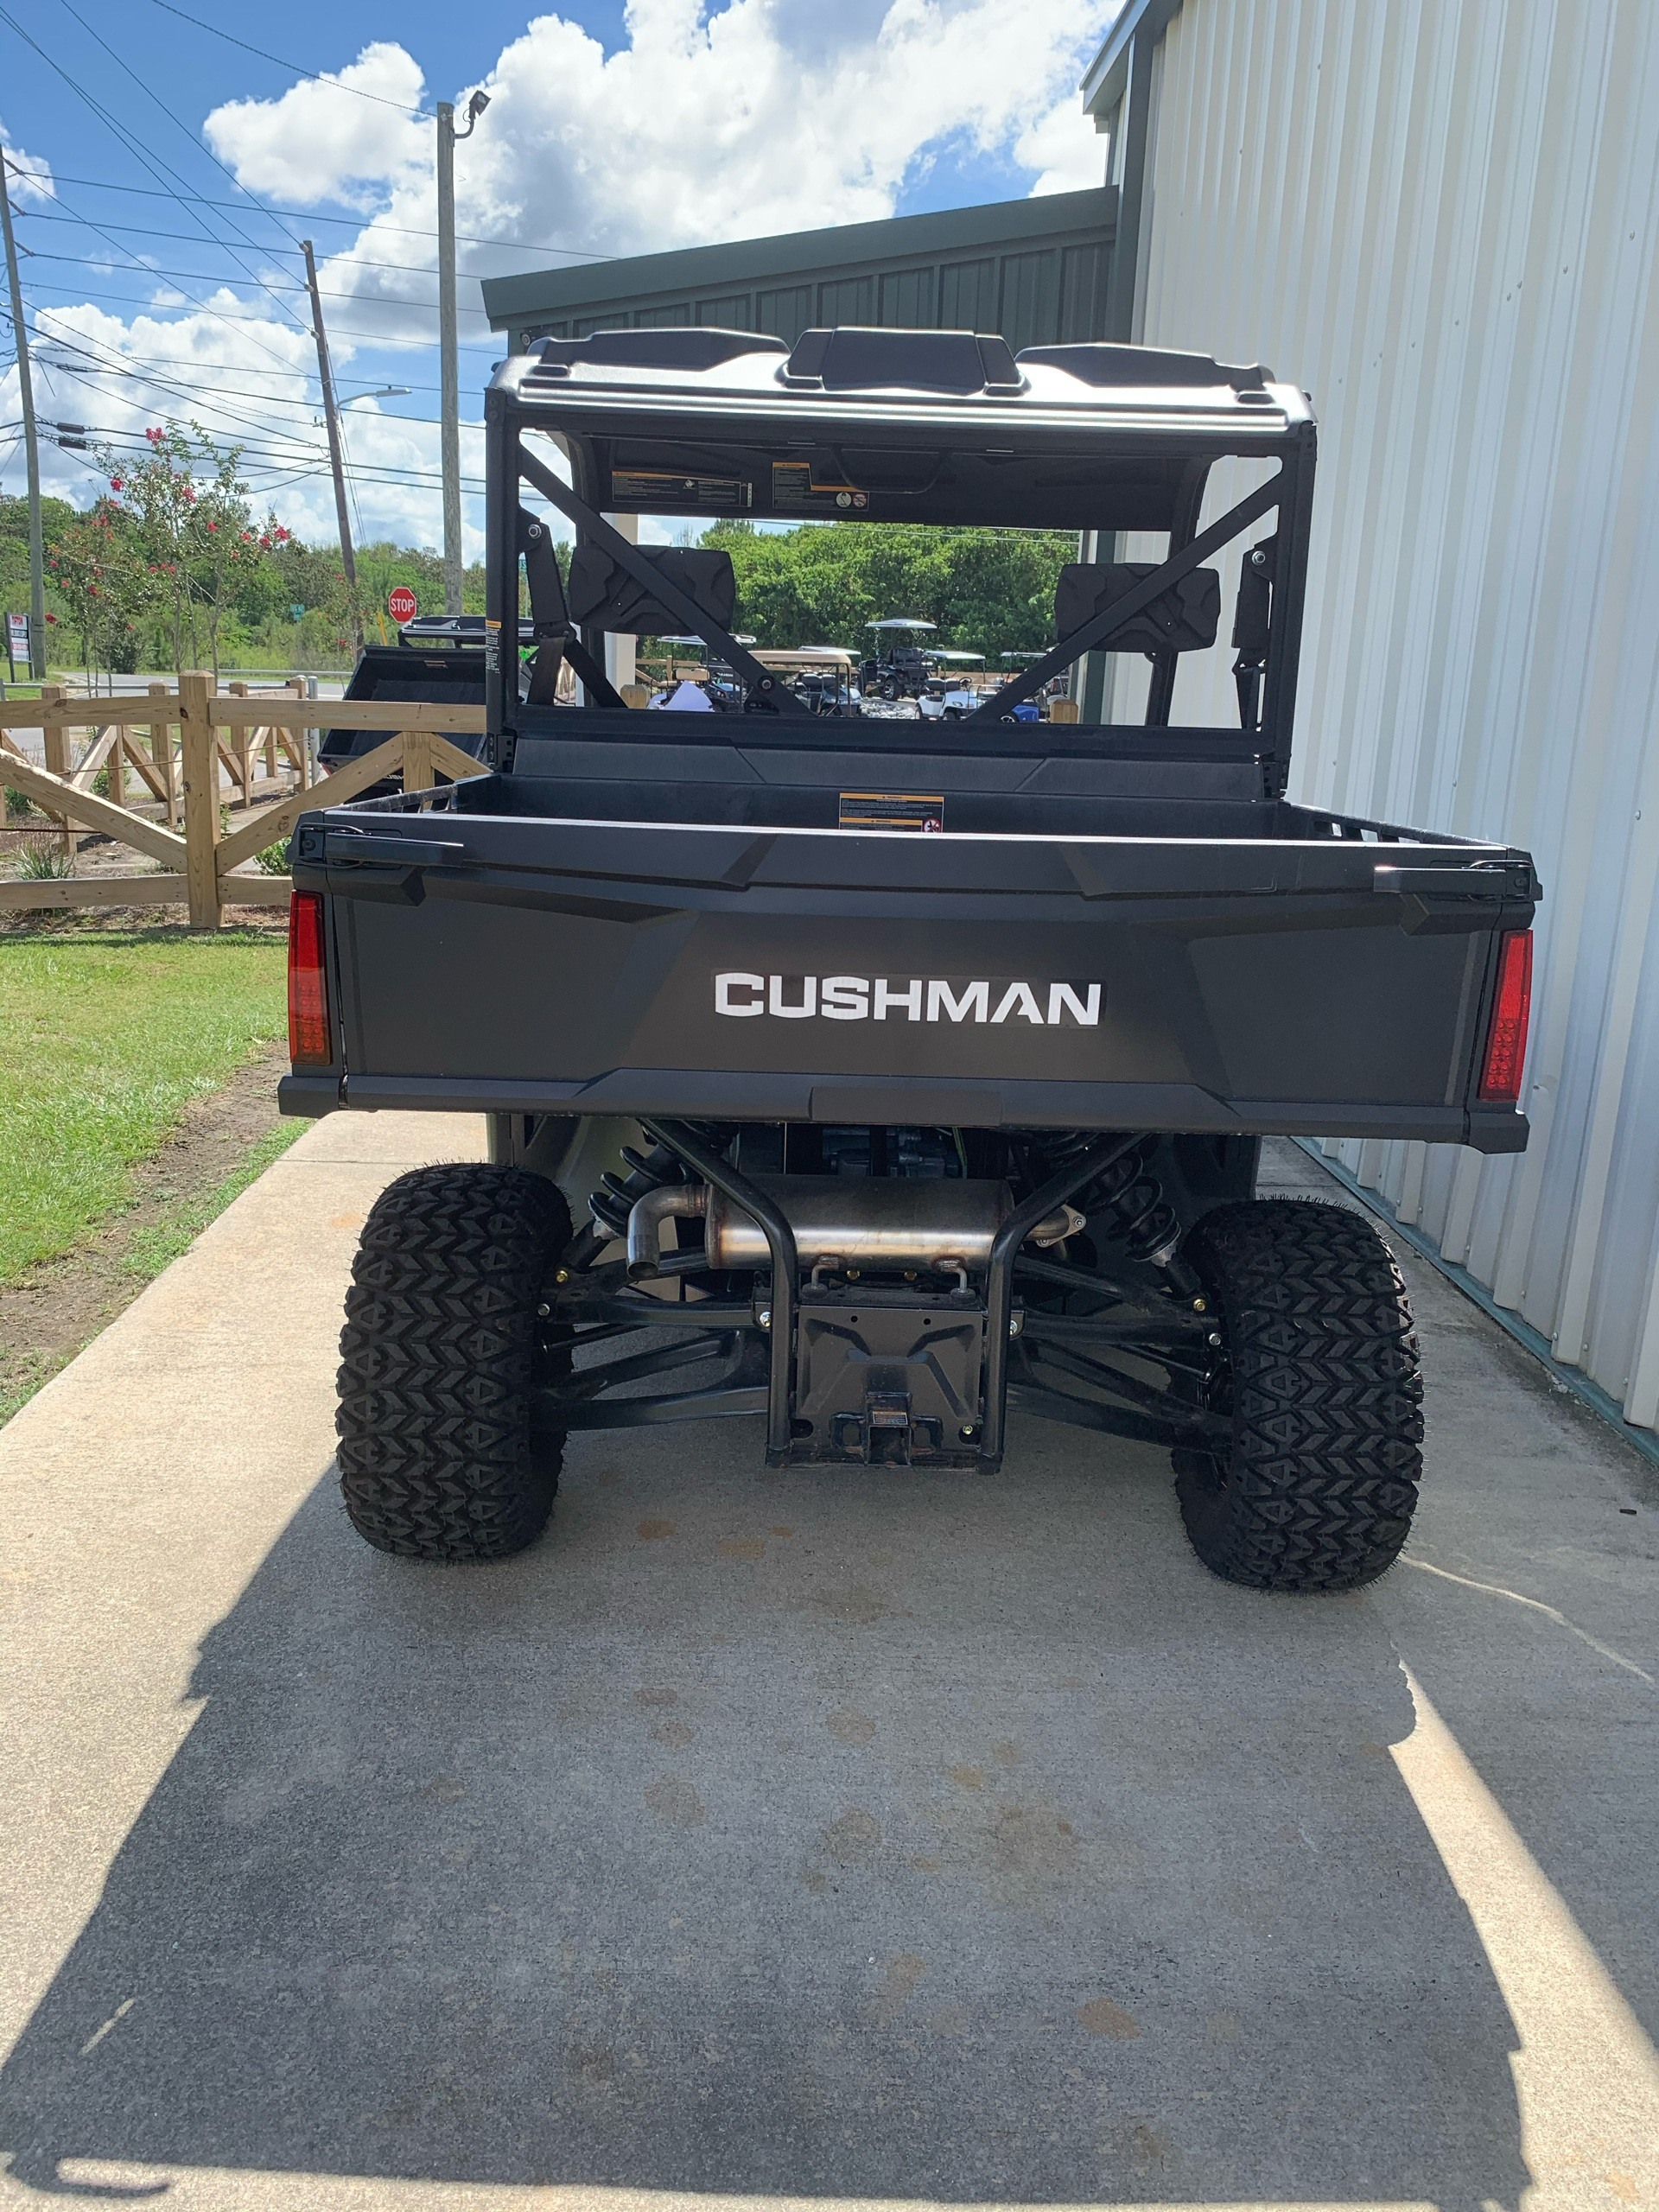 2020 CUSHMAN HAULER 4X4 in Tifton, Georgia - Photo 5